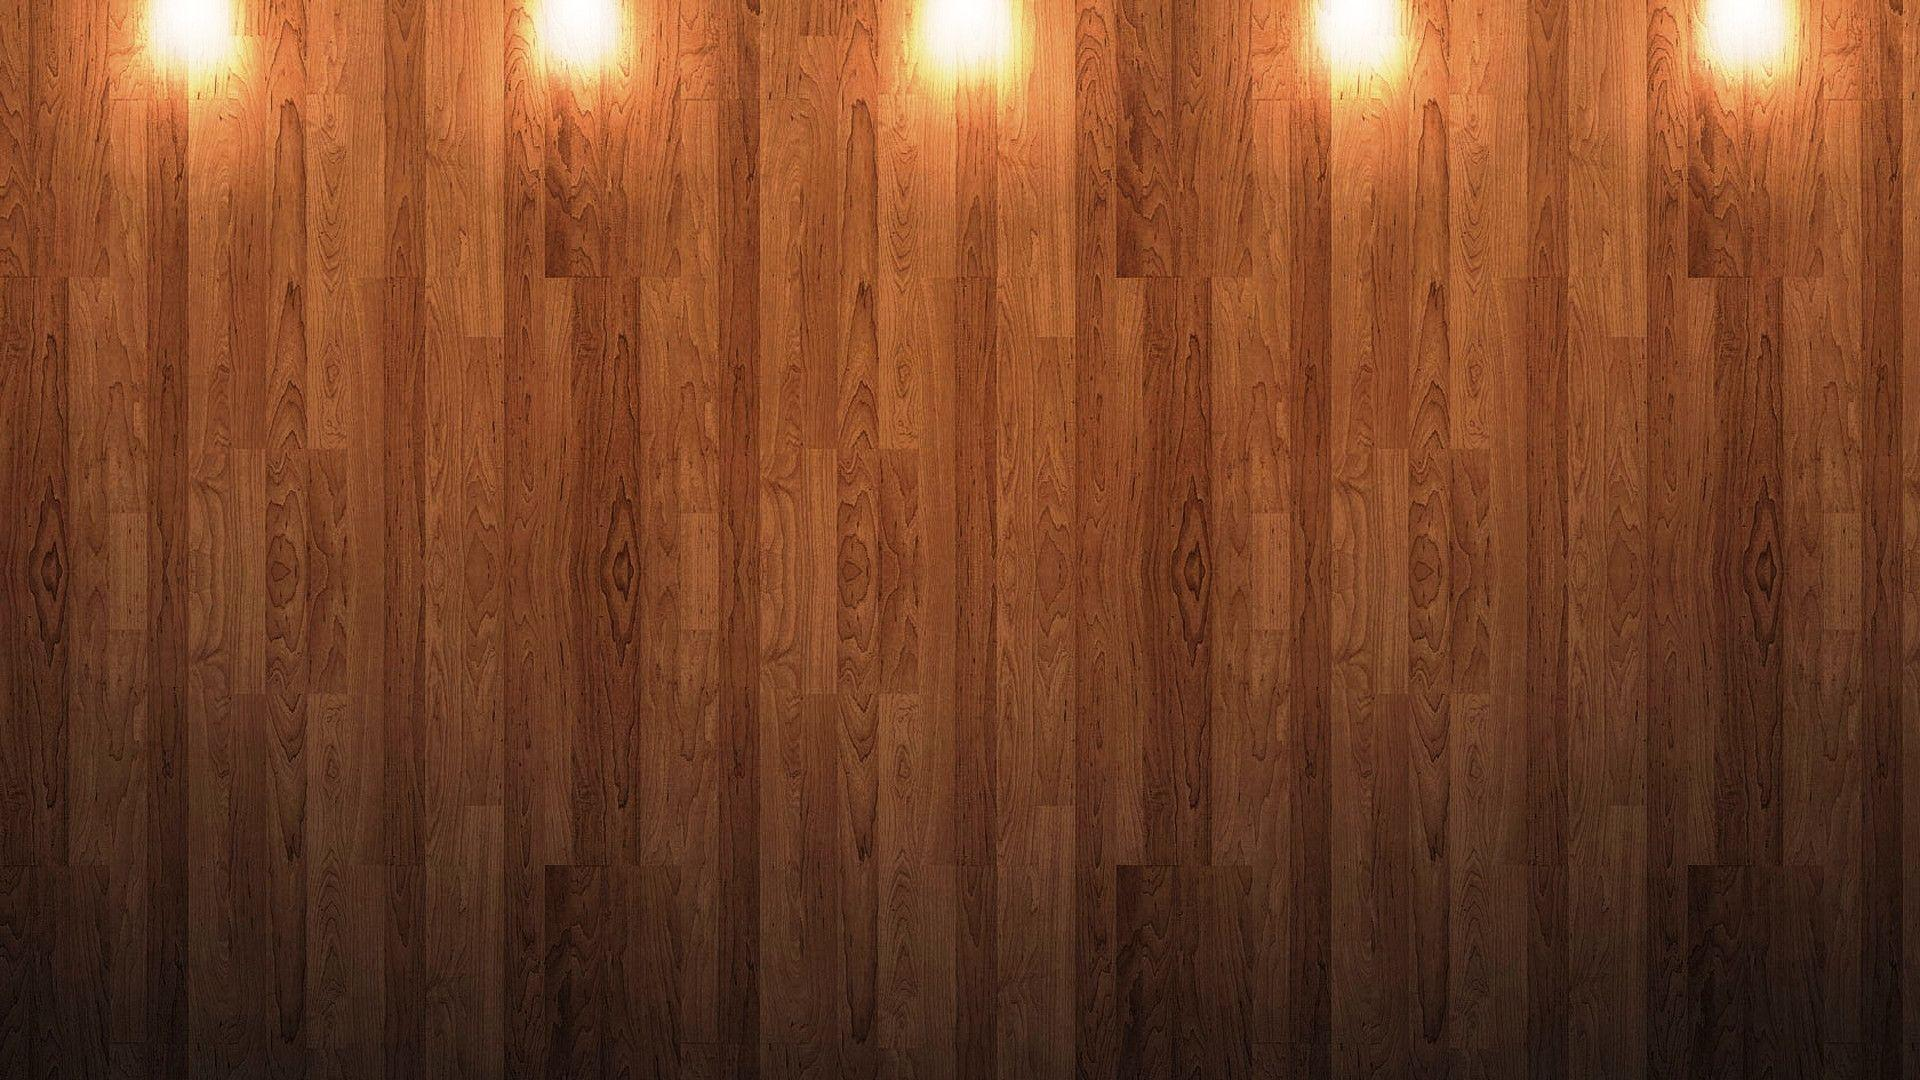 101 Wood Wallpapers | Wood Backgrounds Page 4